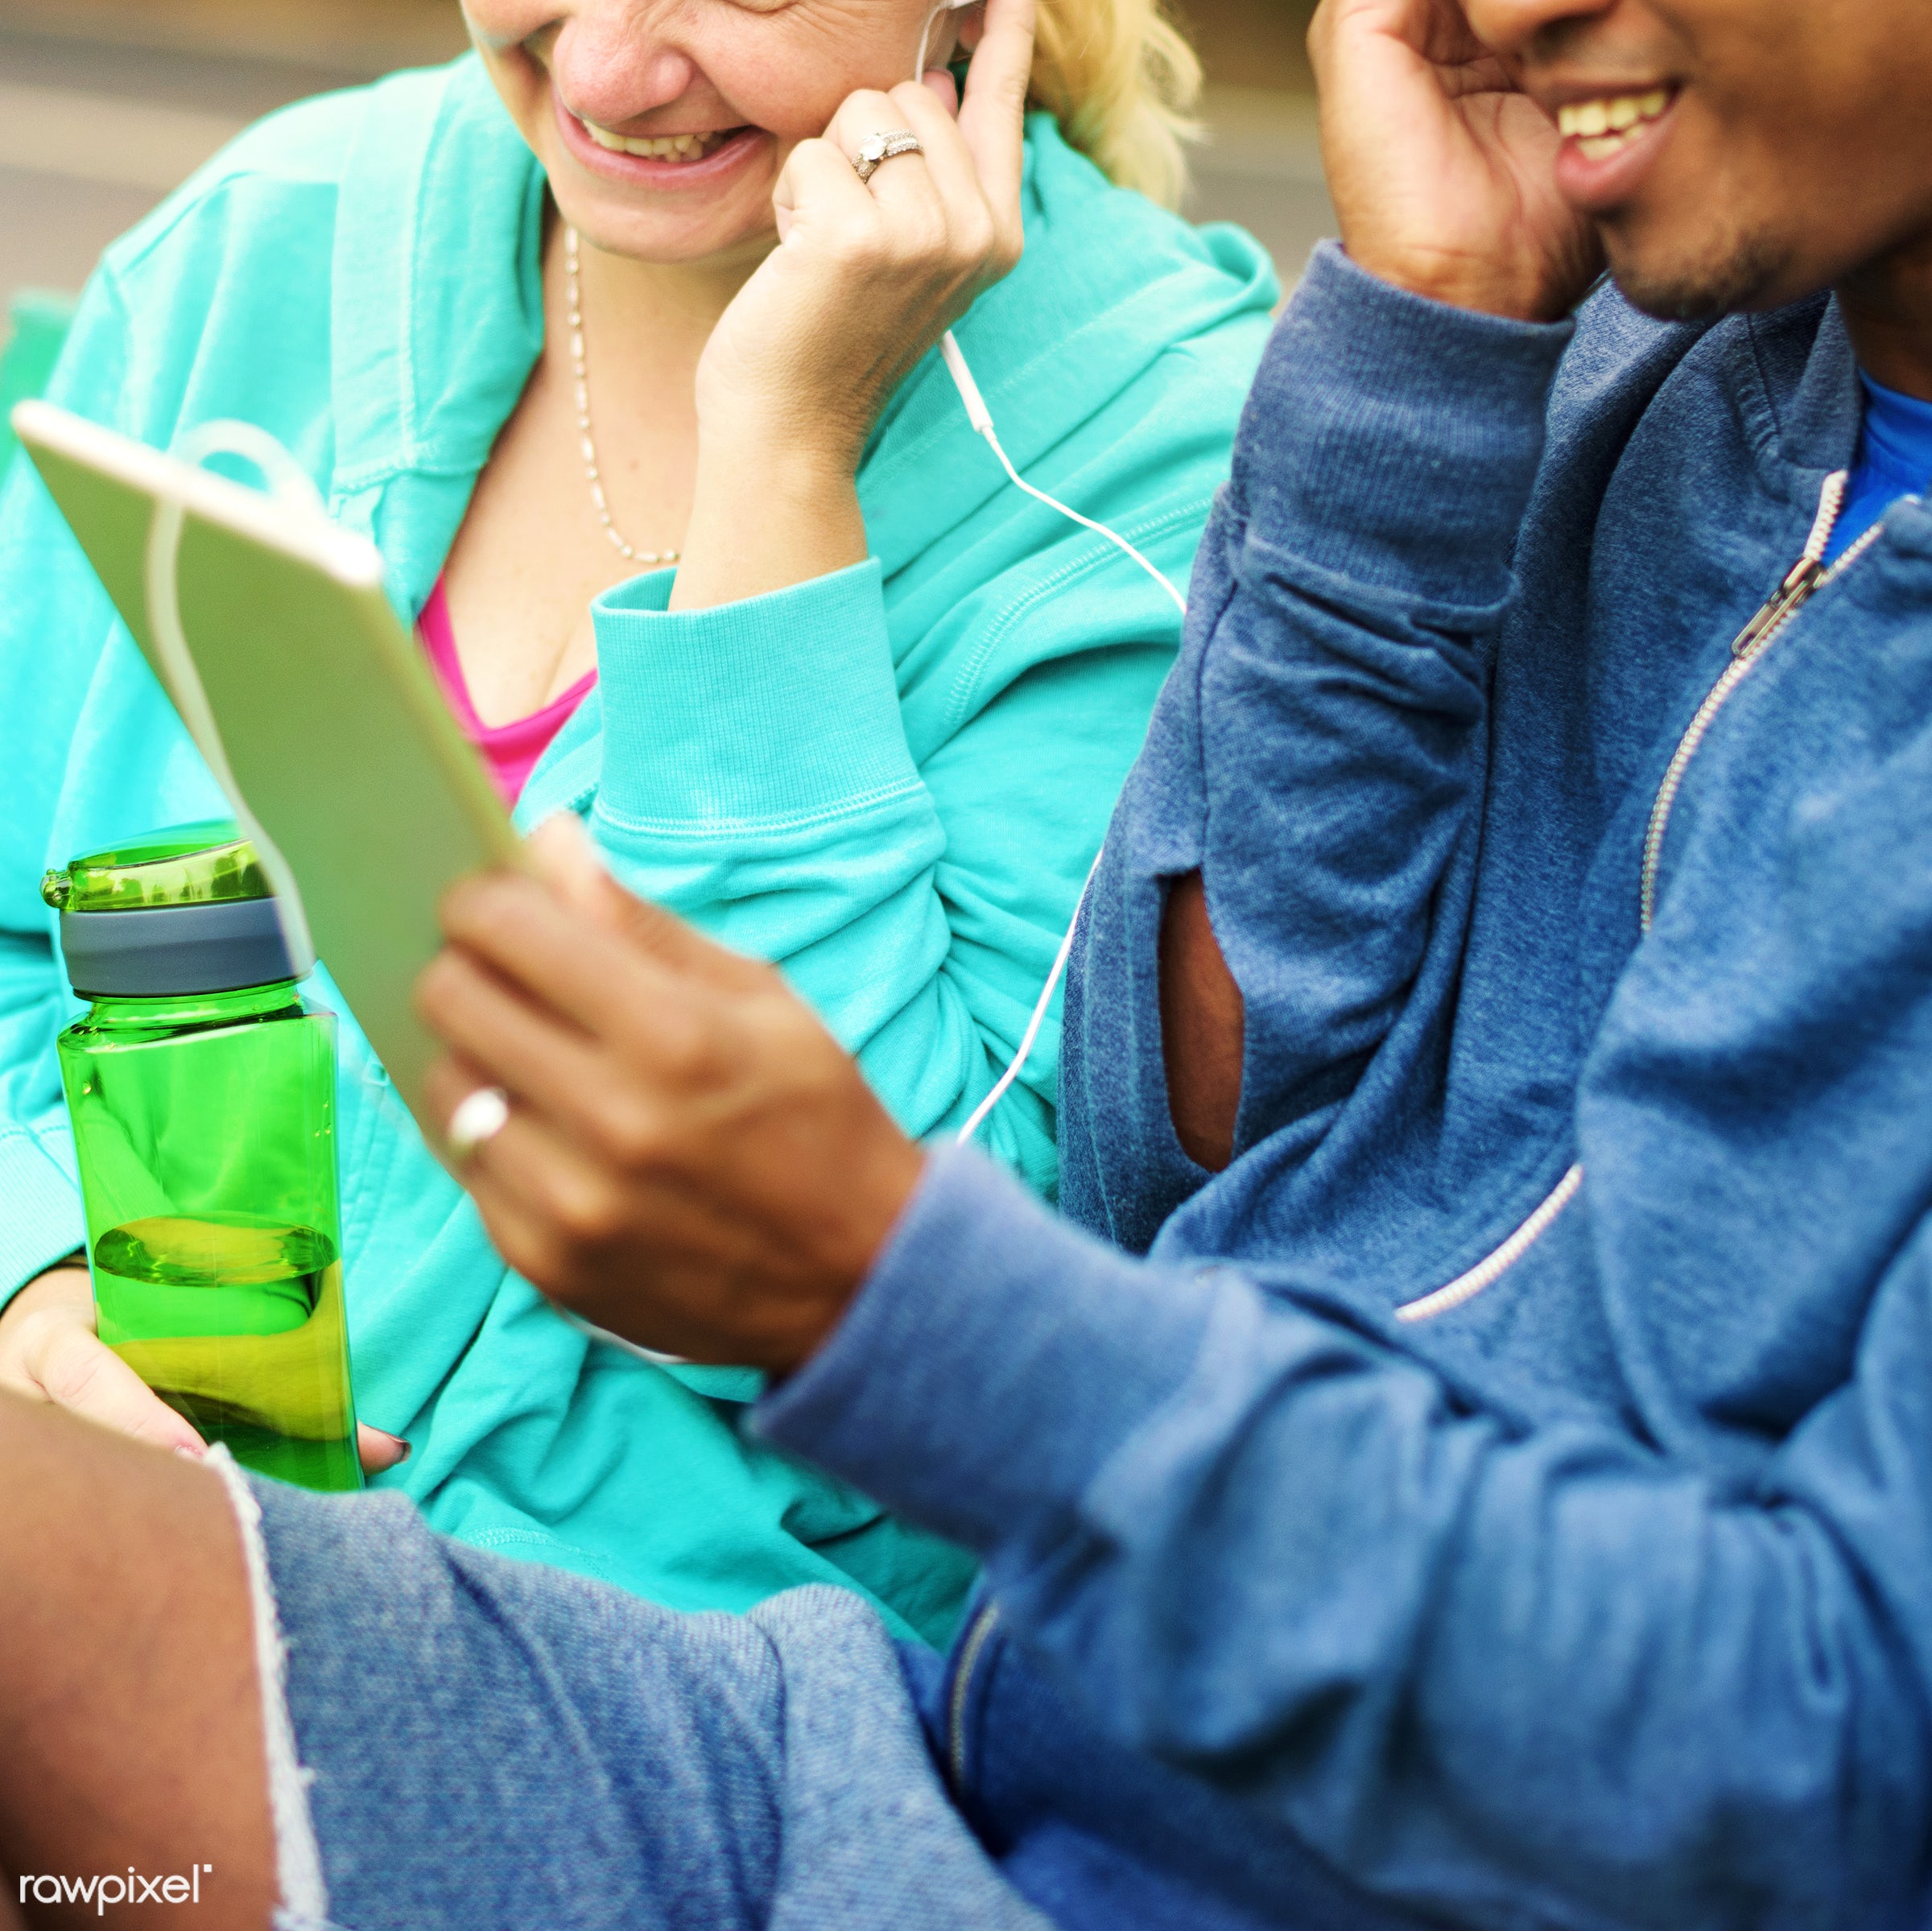 Couple listening to music from a tablet - cheerful, clothing, communication, couple, device, digital, exercise, form, garden...